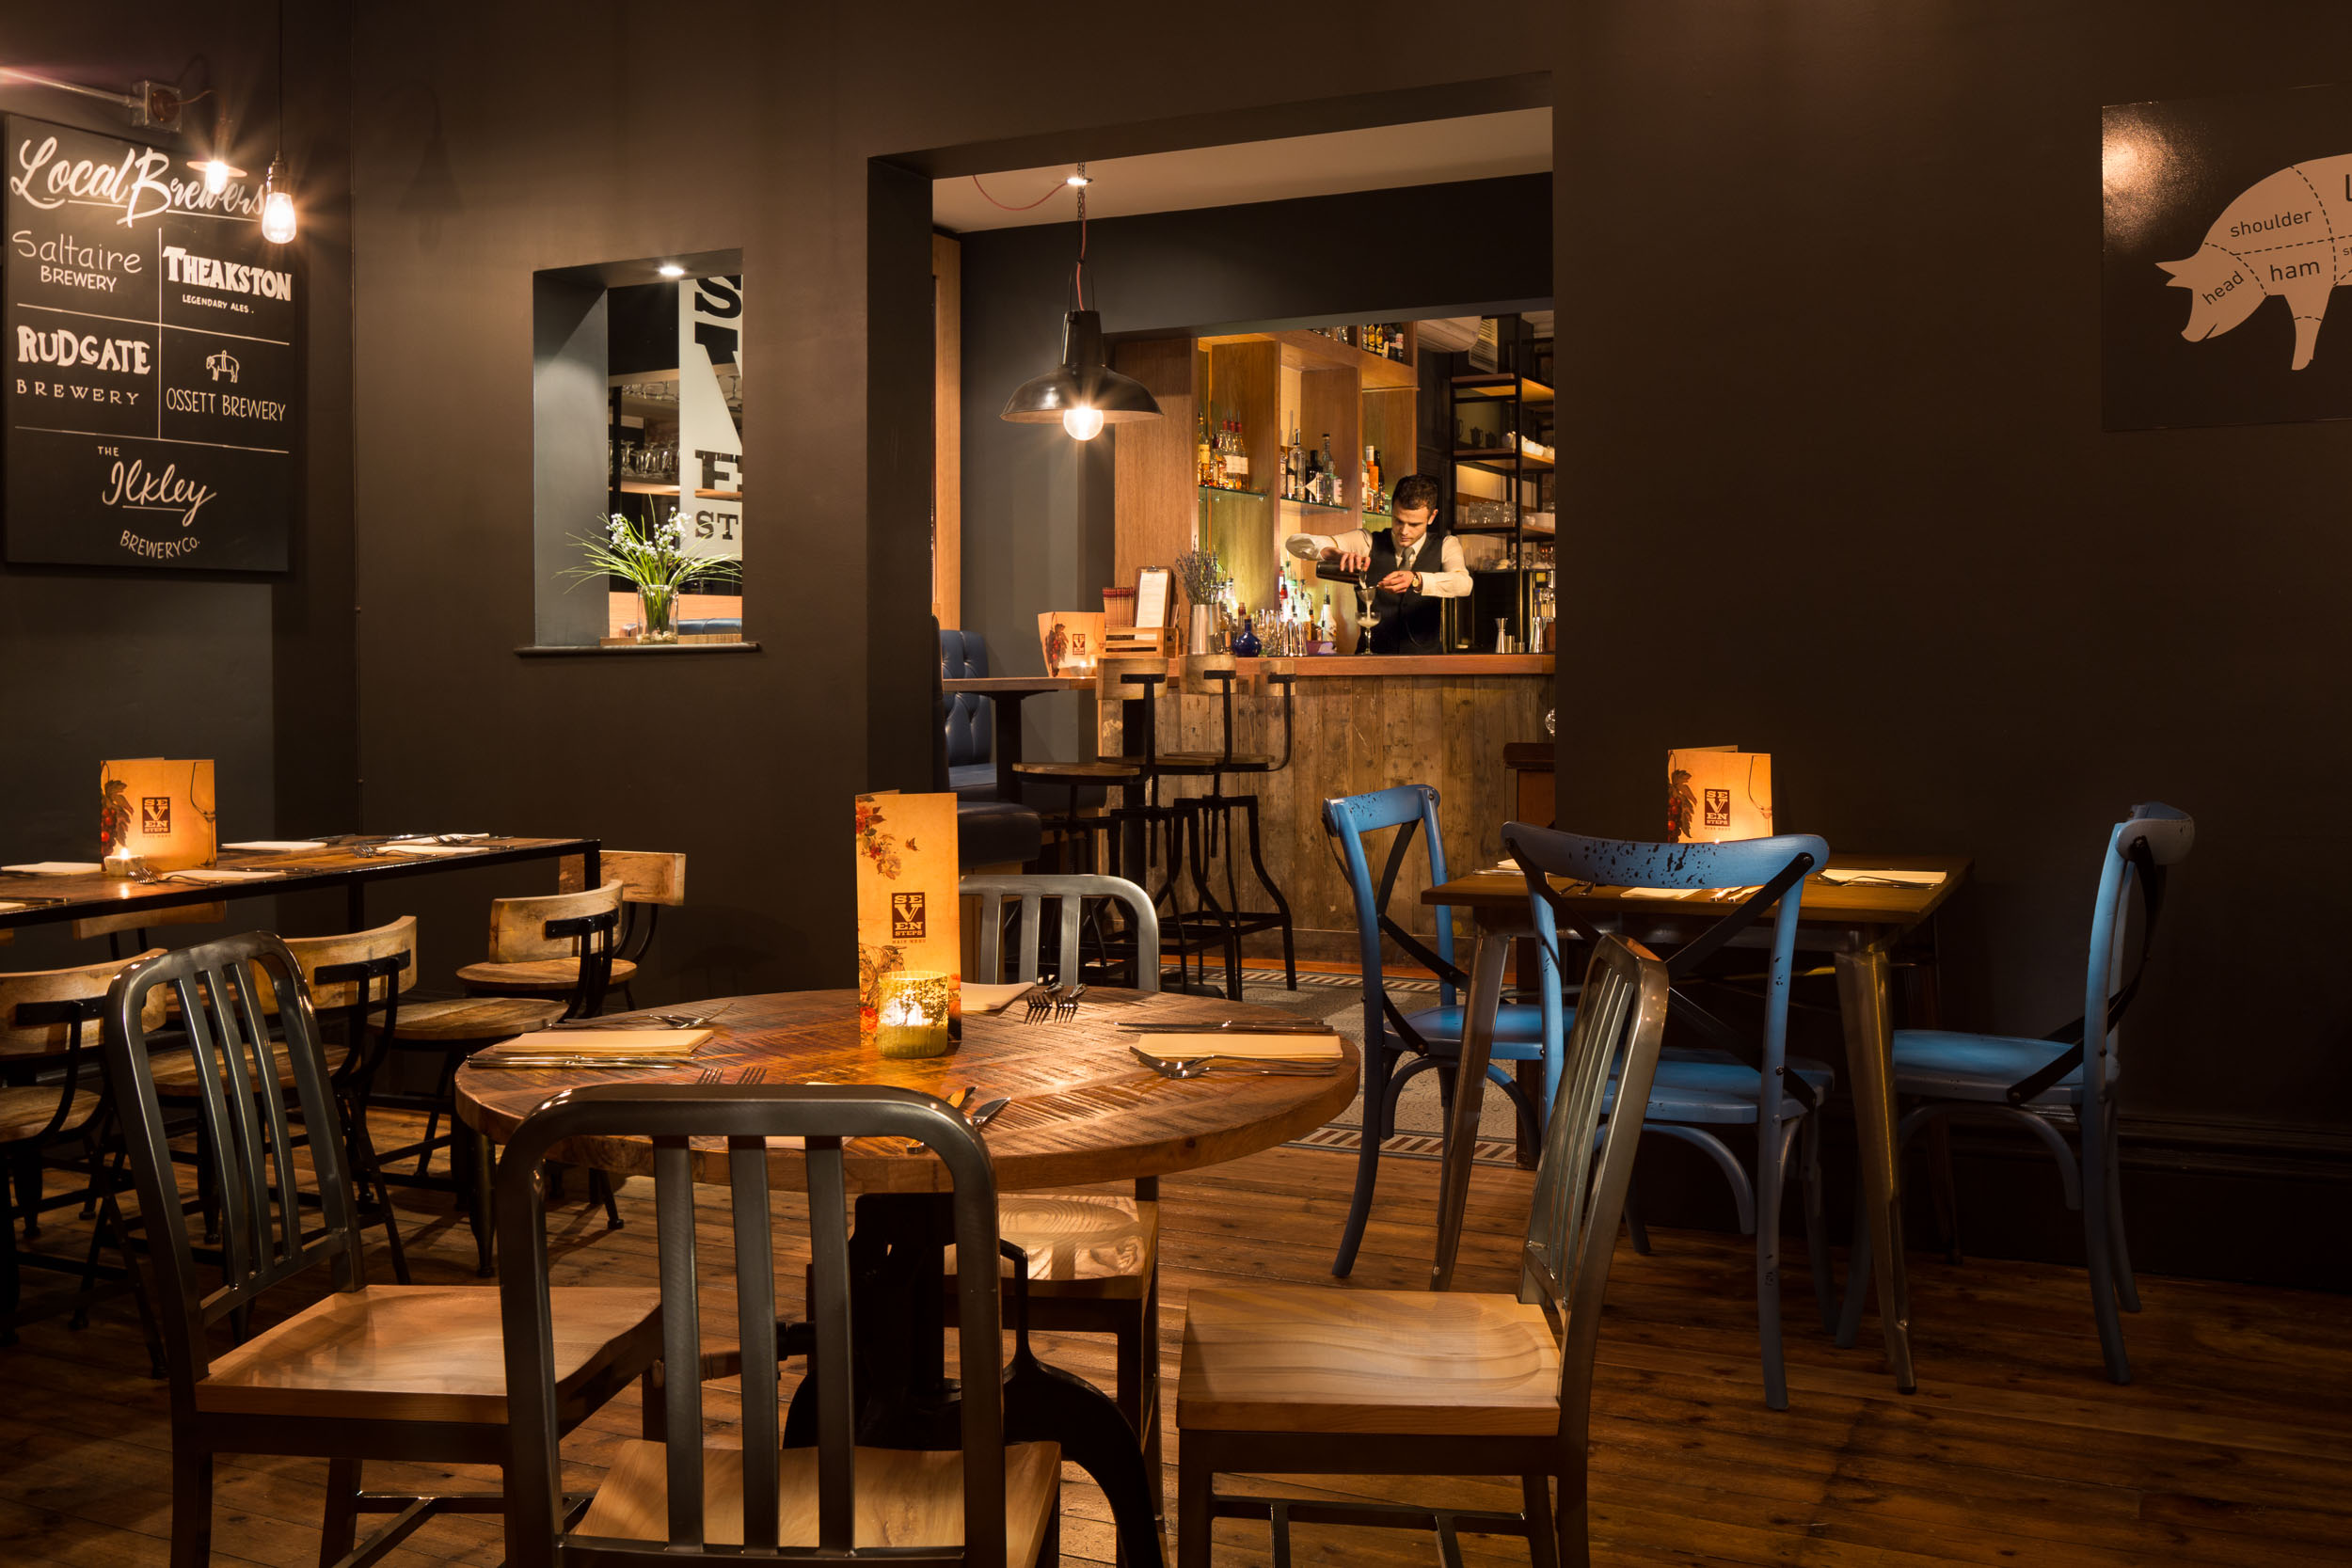 7 steps bar restaurant commercial dining area through interior leeds.jpg